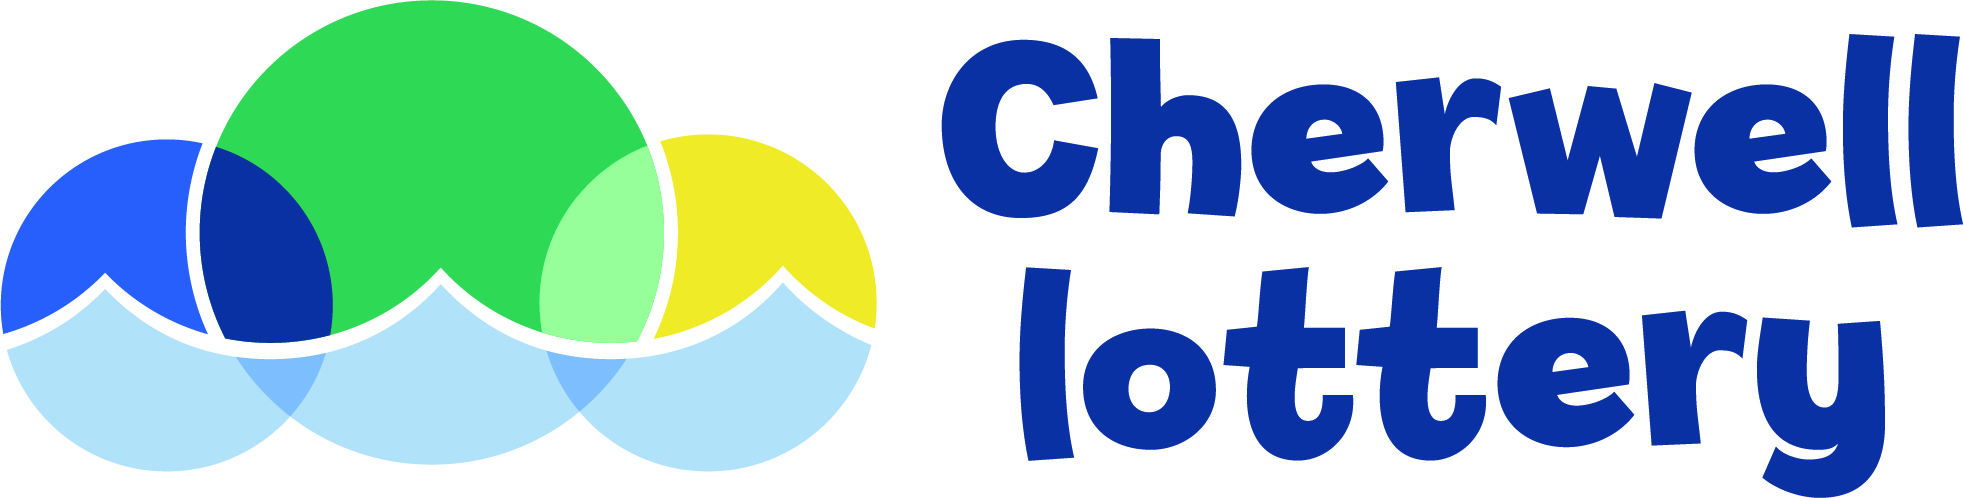 New Cherwell Community Grant Fund for Cherwell Lottery Good Causes